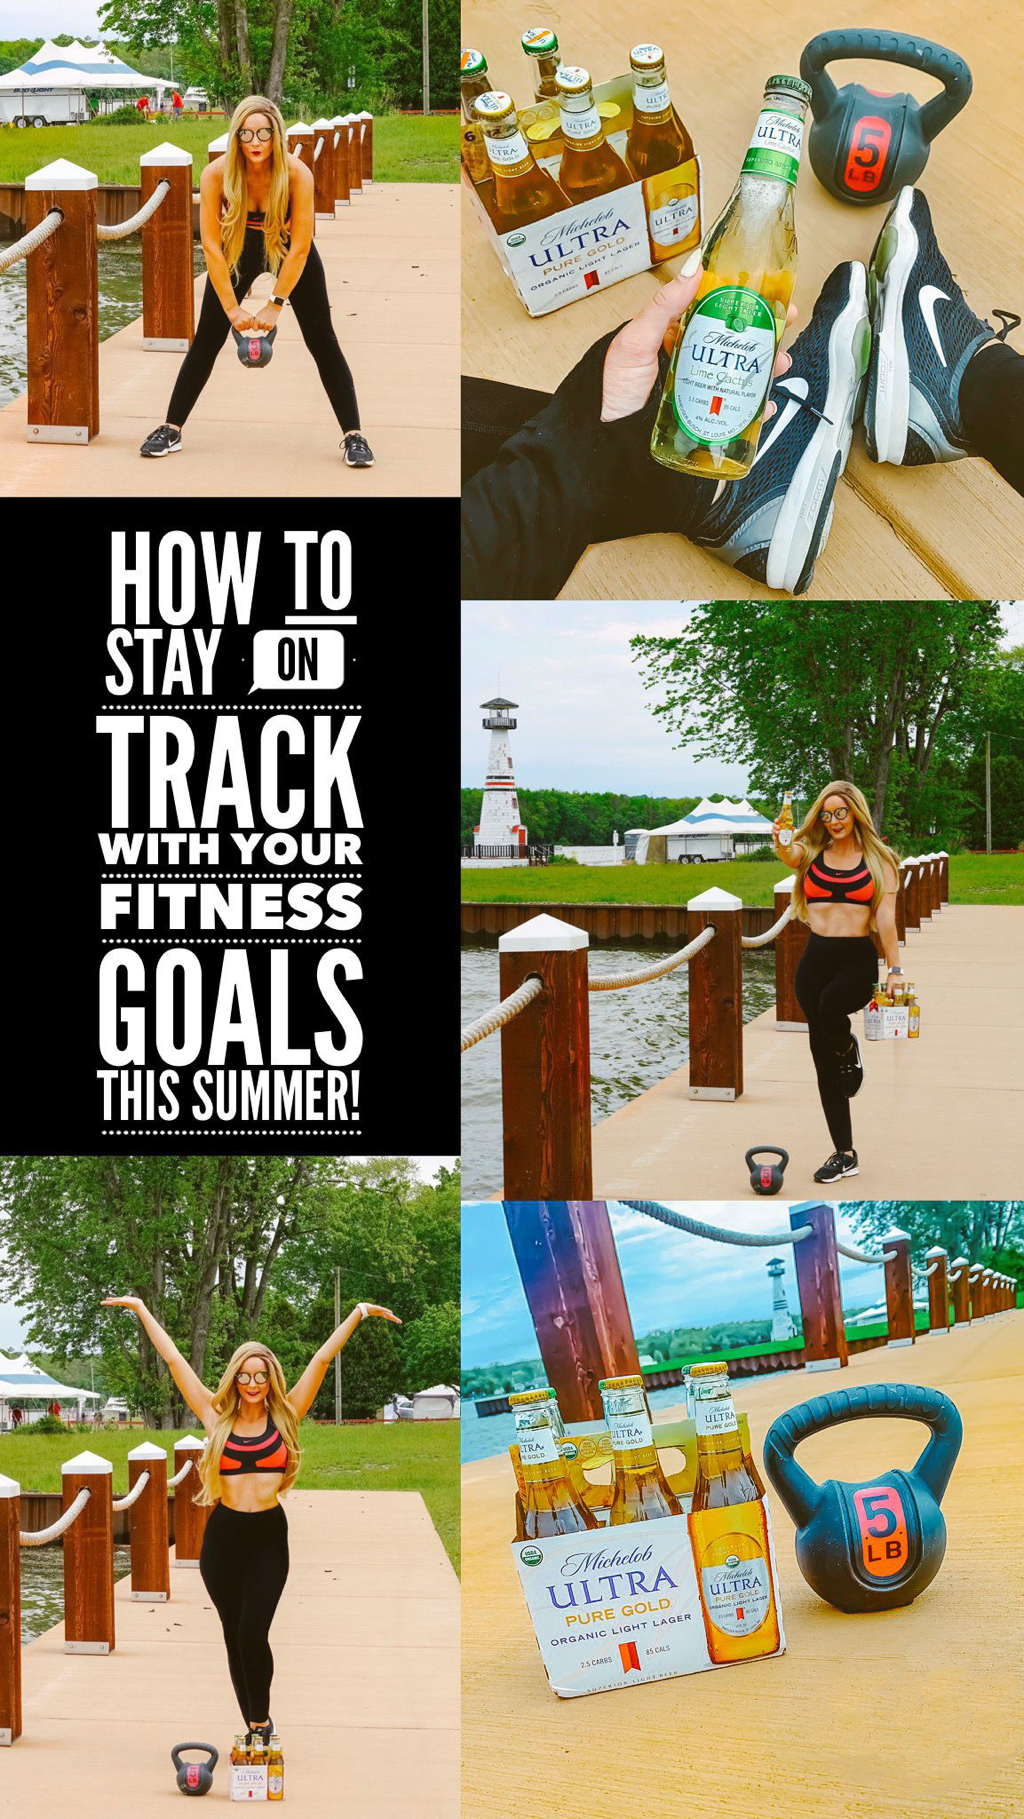 How To Stay On Track With Your Fitness Goals This Summer!